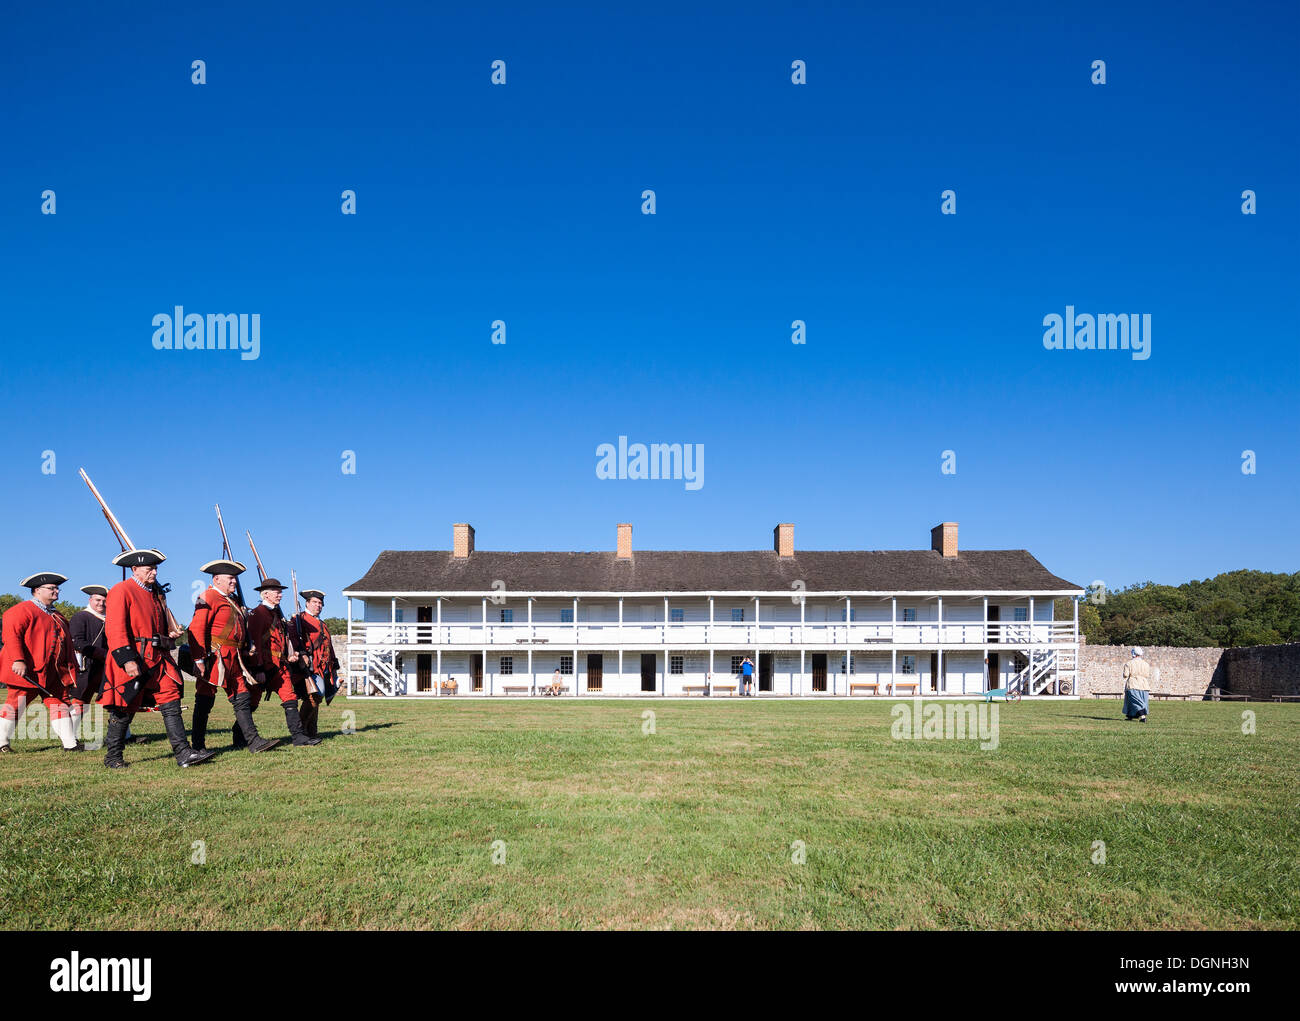 Historic 18th century daily life in Fort Frederick Maryland. Volunteers march with period uniforms and muskets. East barracks. - Stock Image